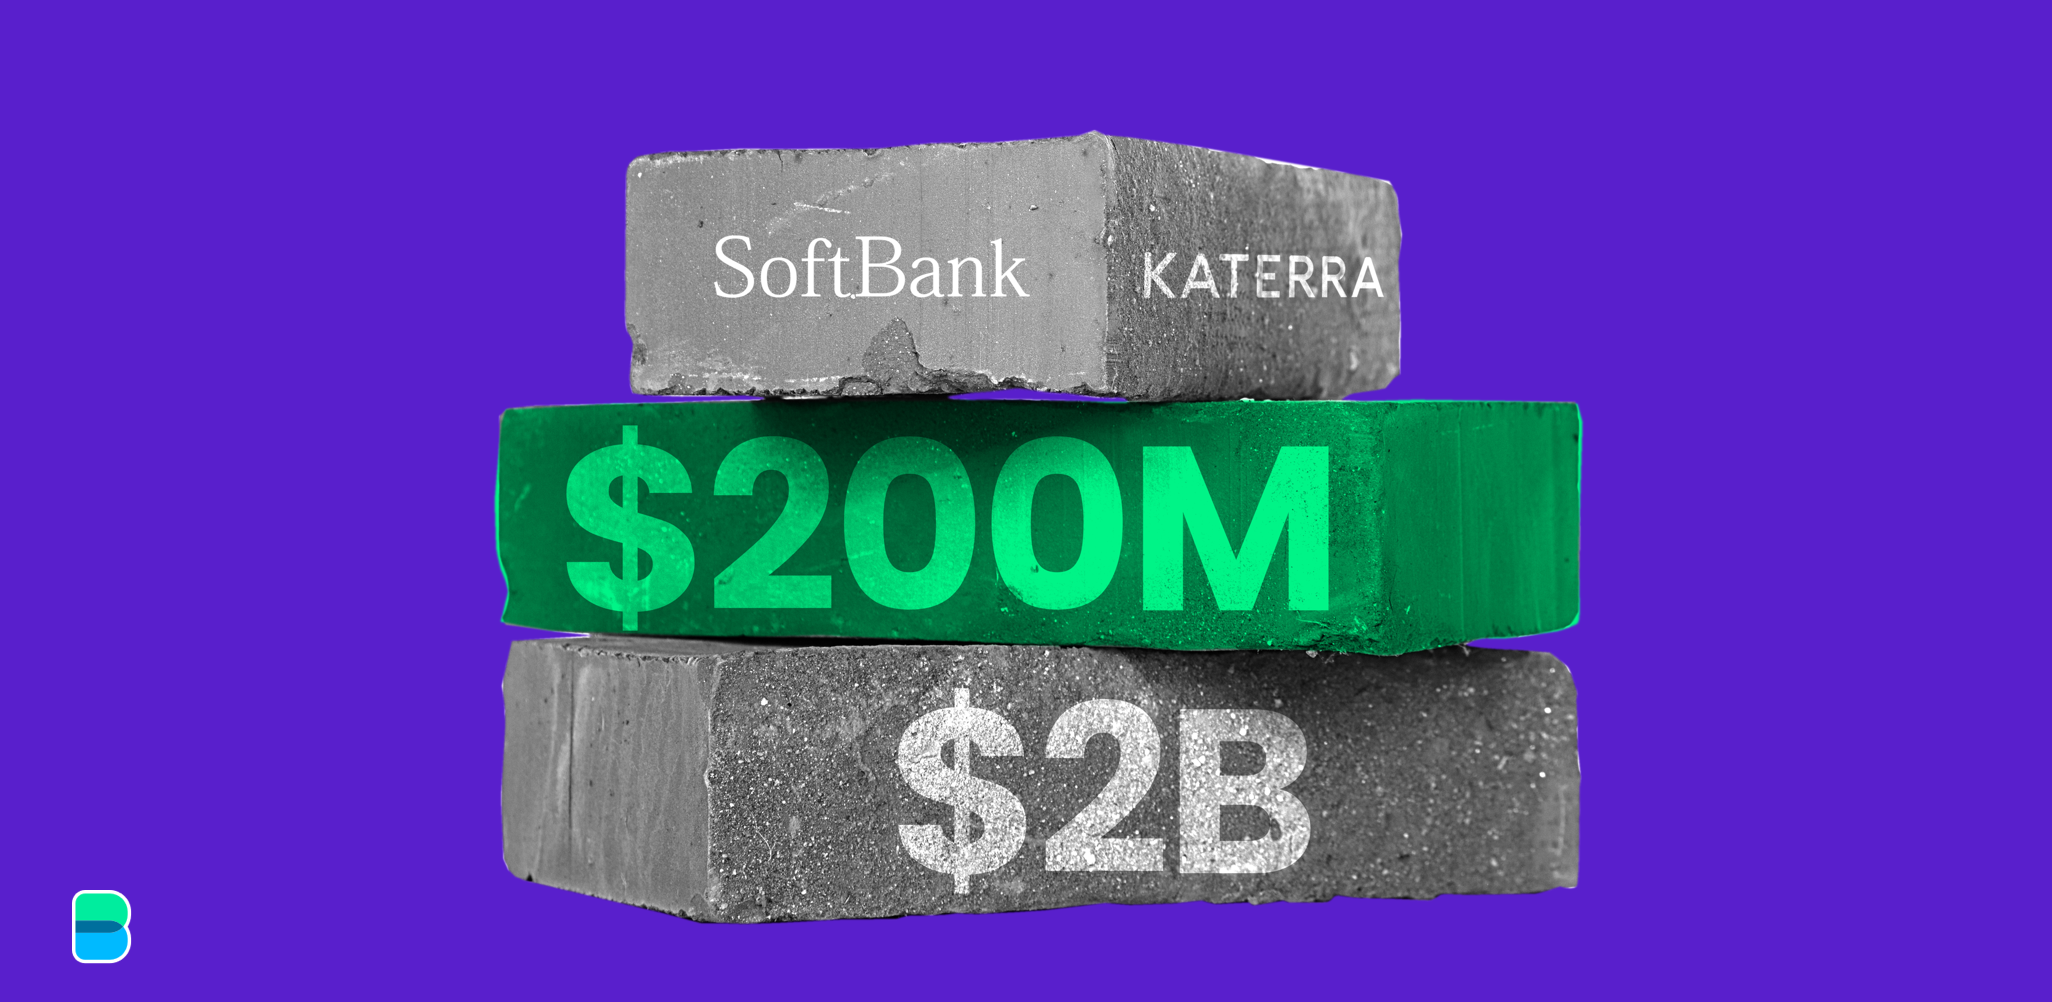 SoftBank comes to Katerra's rescue with $200mn bailout